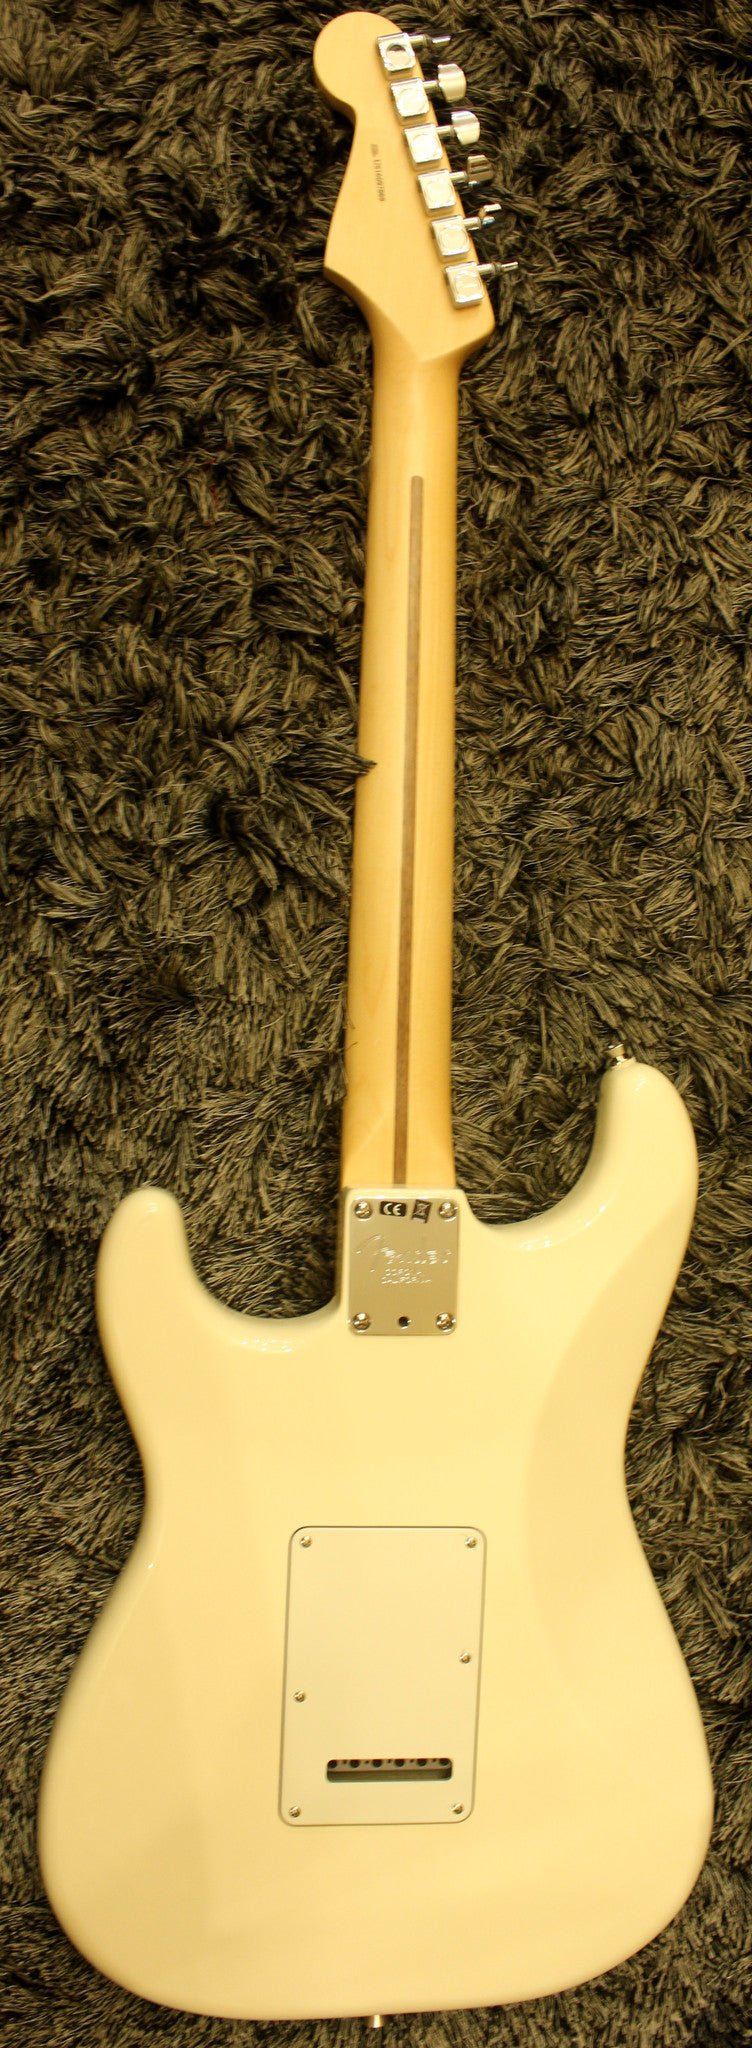 Fender American Professional Stratocaster - Olympic White with Maple Fingerboard HIENDGUITAR.COM - HIENDGUITAR.COM